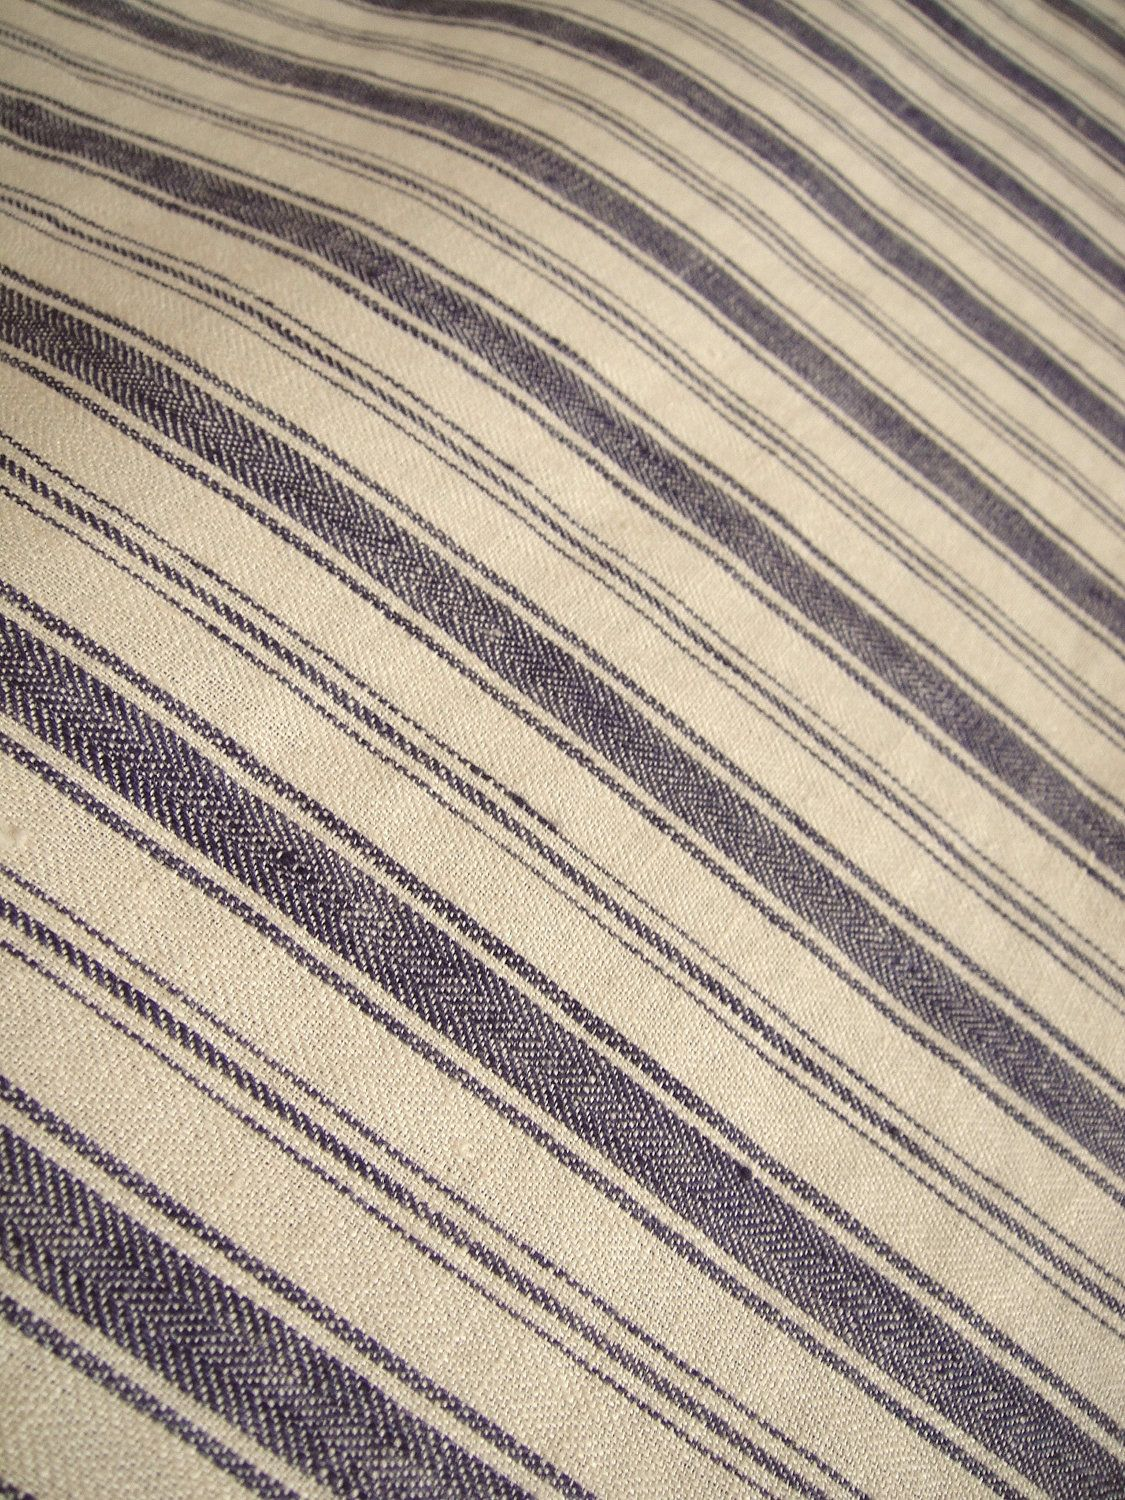 Meterage French Belgian Linen Ticking Fabric By Libeco